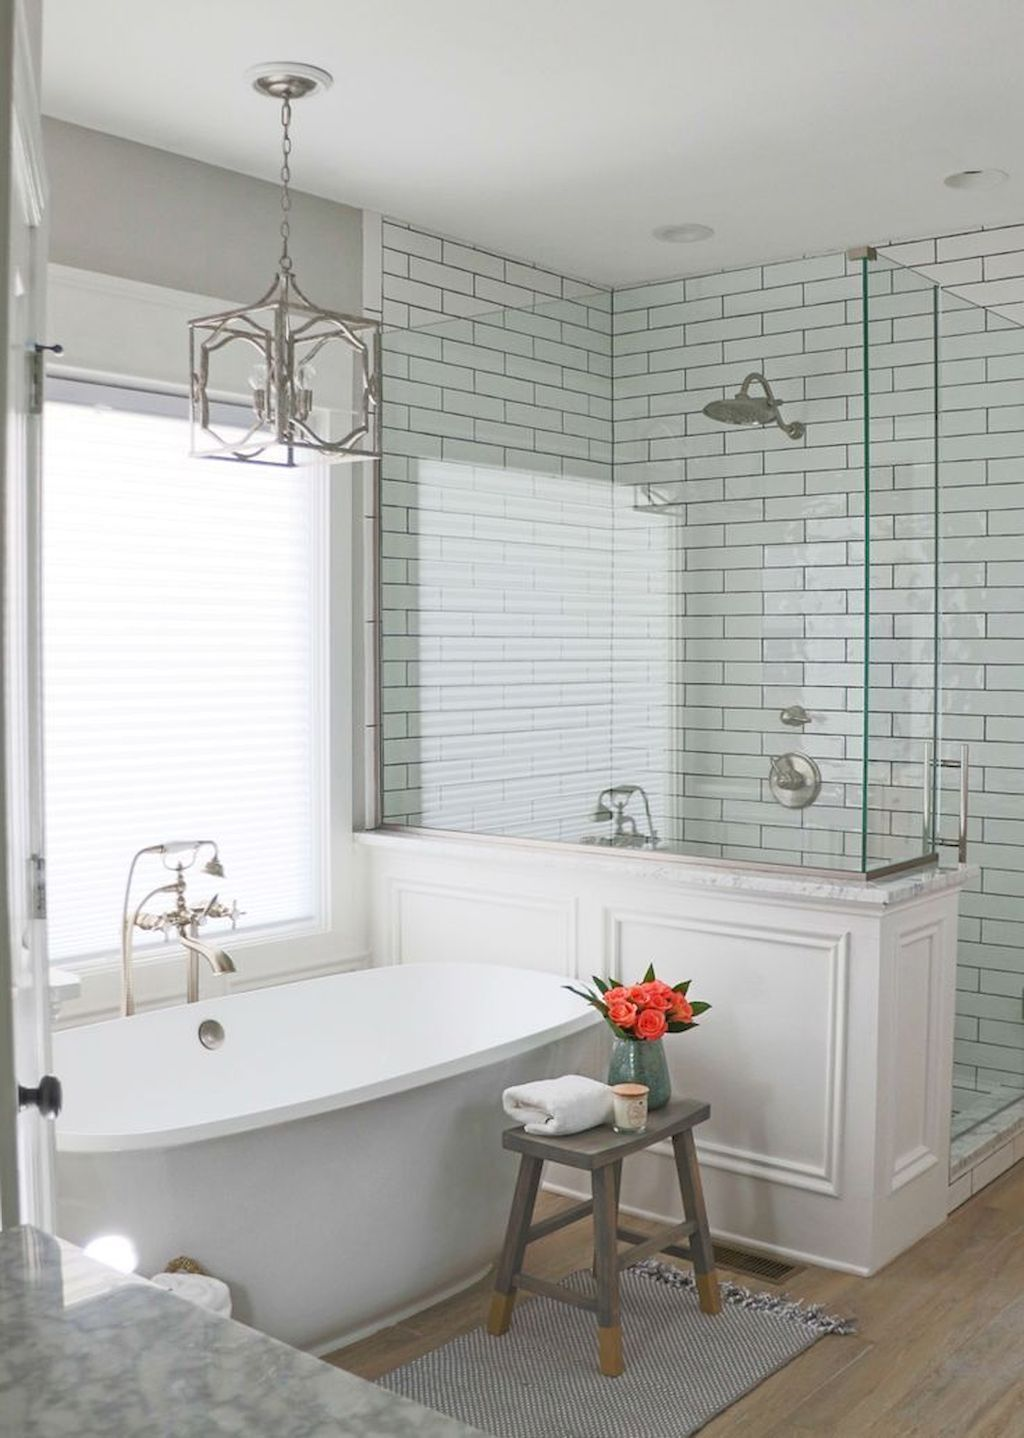 80 Best Farmhouse Tile Shower Ideas Remodel Http Prohomedecor Info 80 Best Farmhouse T Small Master Bathroom Small Bathroom Remodel Farmhouse Master Bathroom